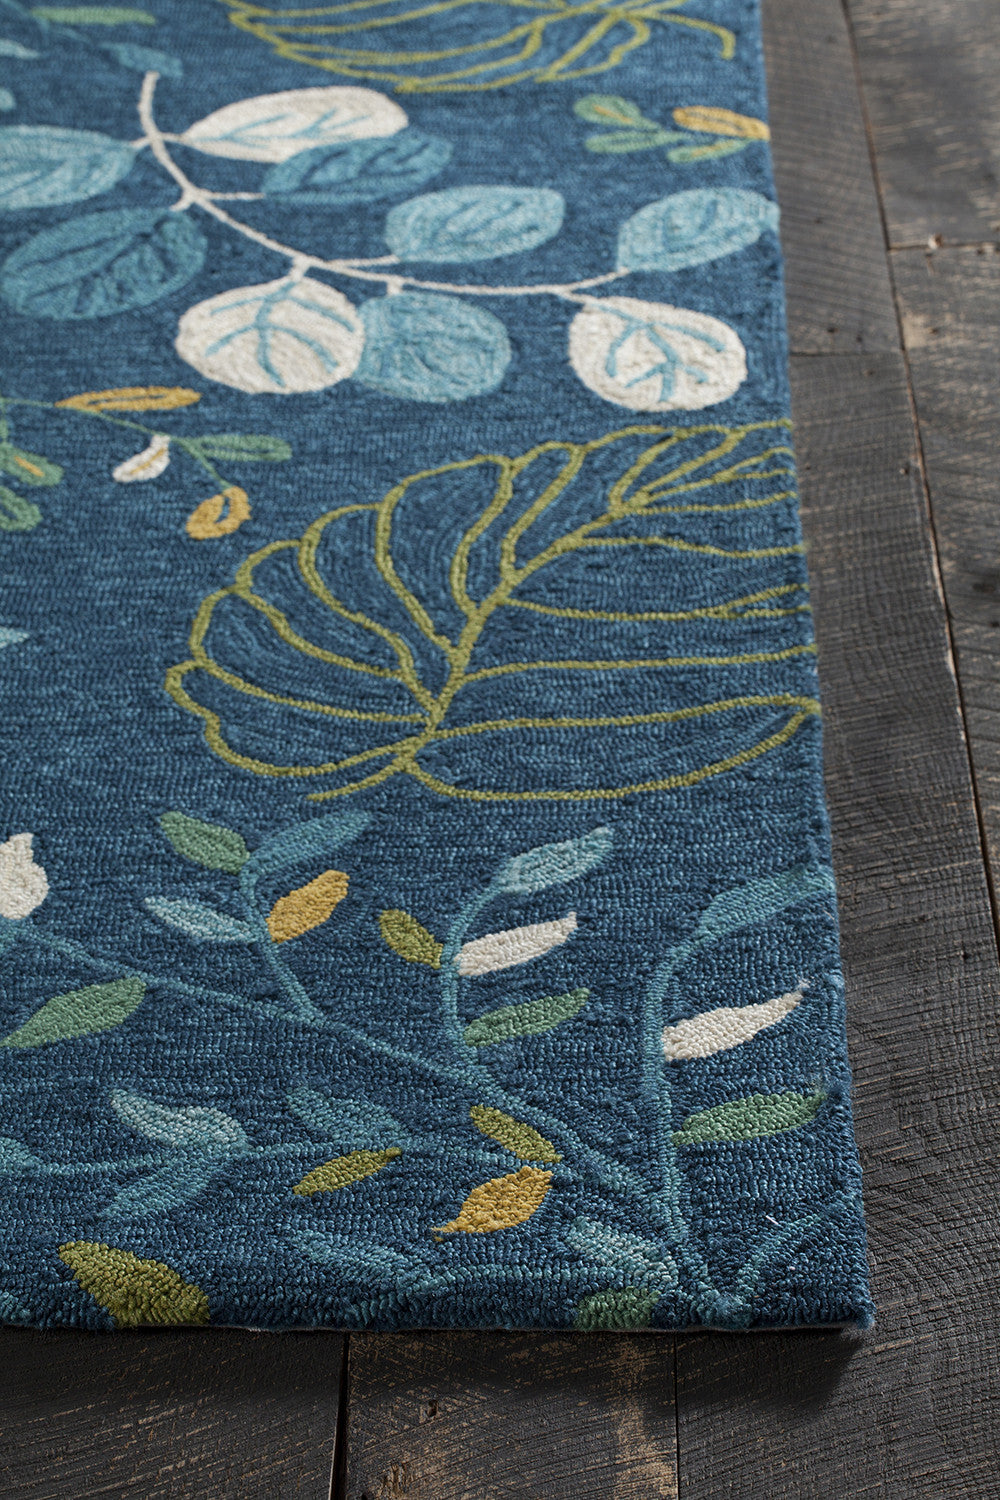 Terra Collection Hand Tufted Area Rug In Blue, Cream, Green, U0026 Yellow  Design By Chandra Rugs